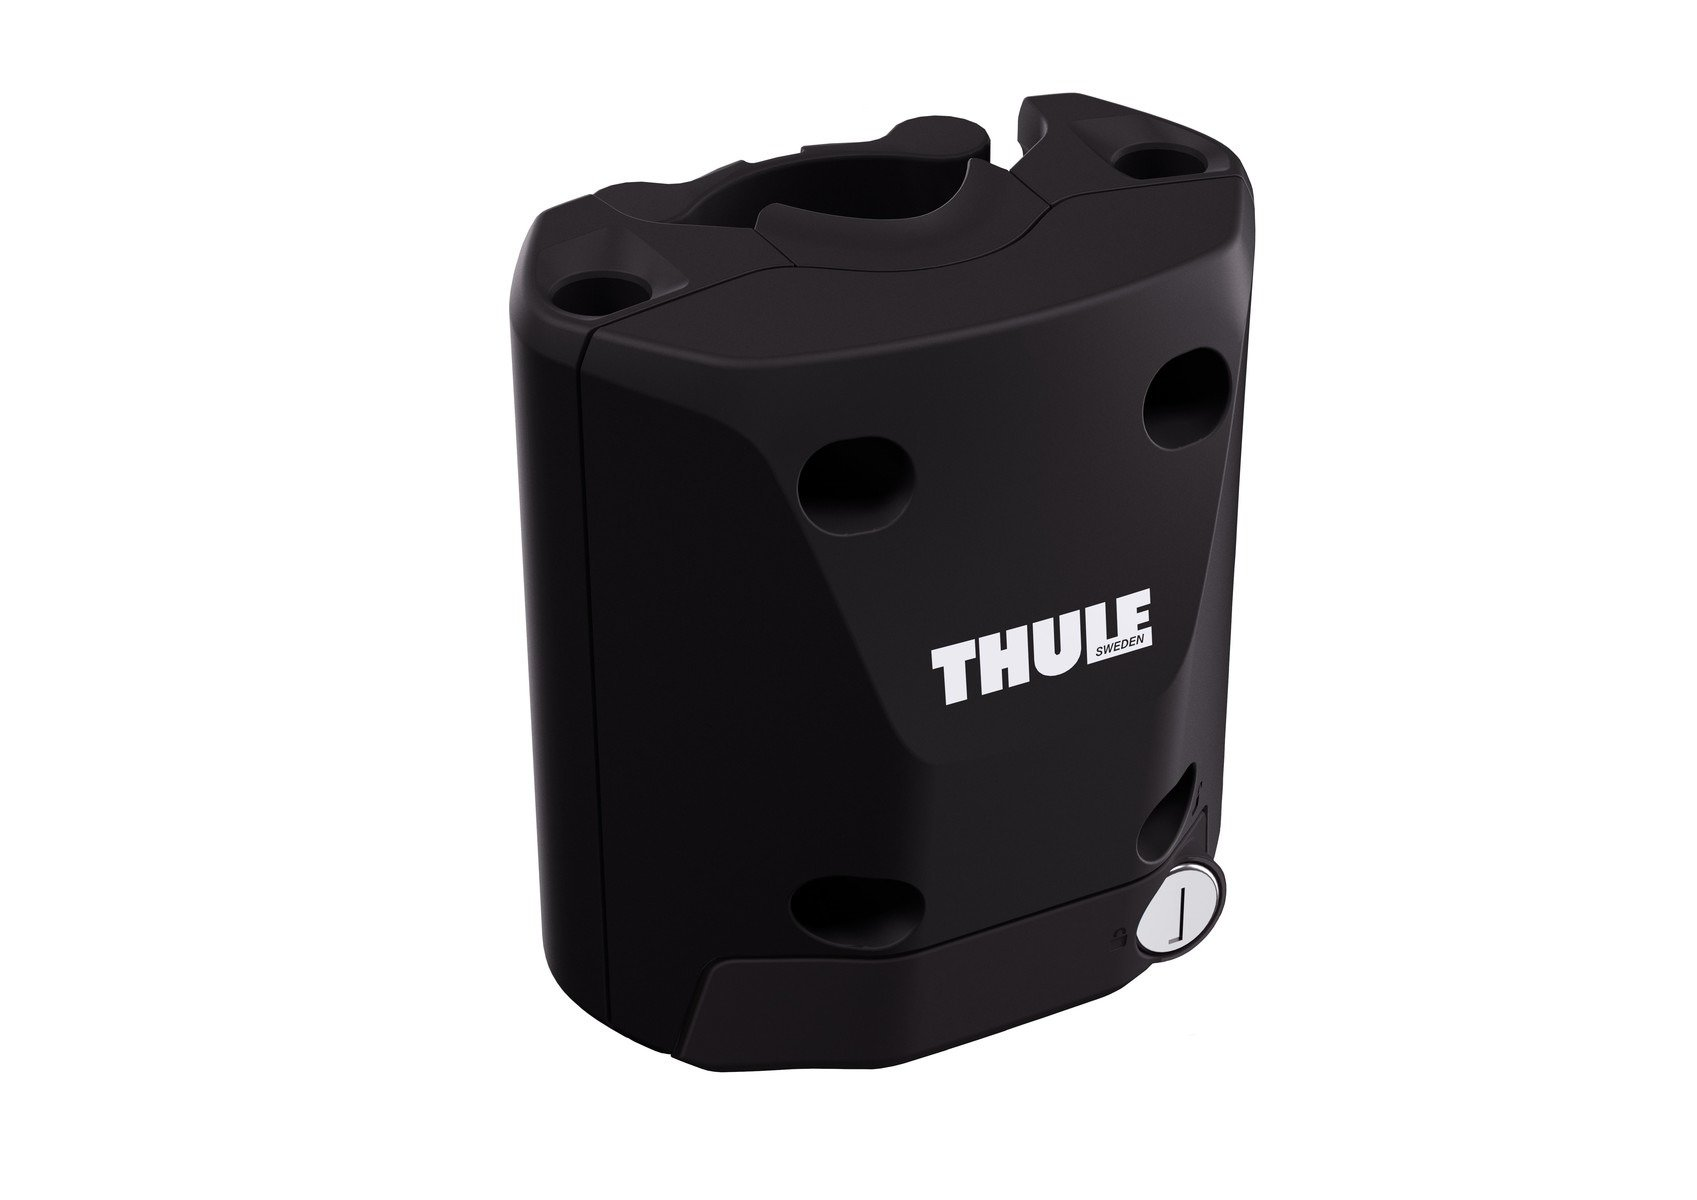 Thule - Quick Release Bracket - RideAlong